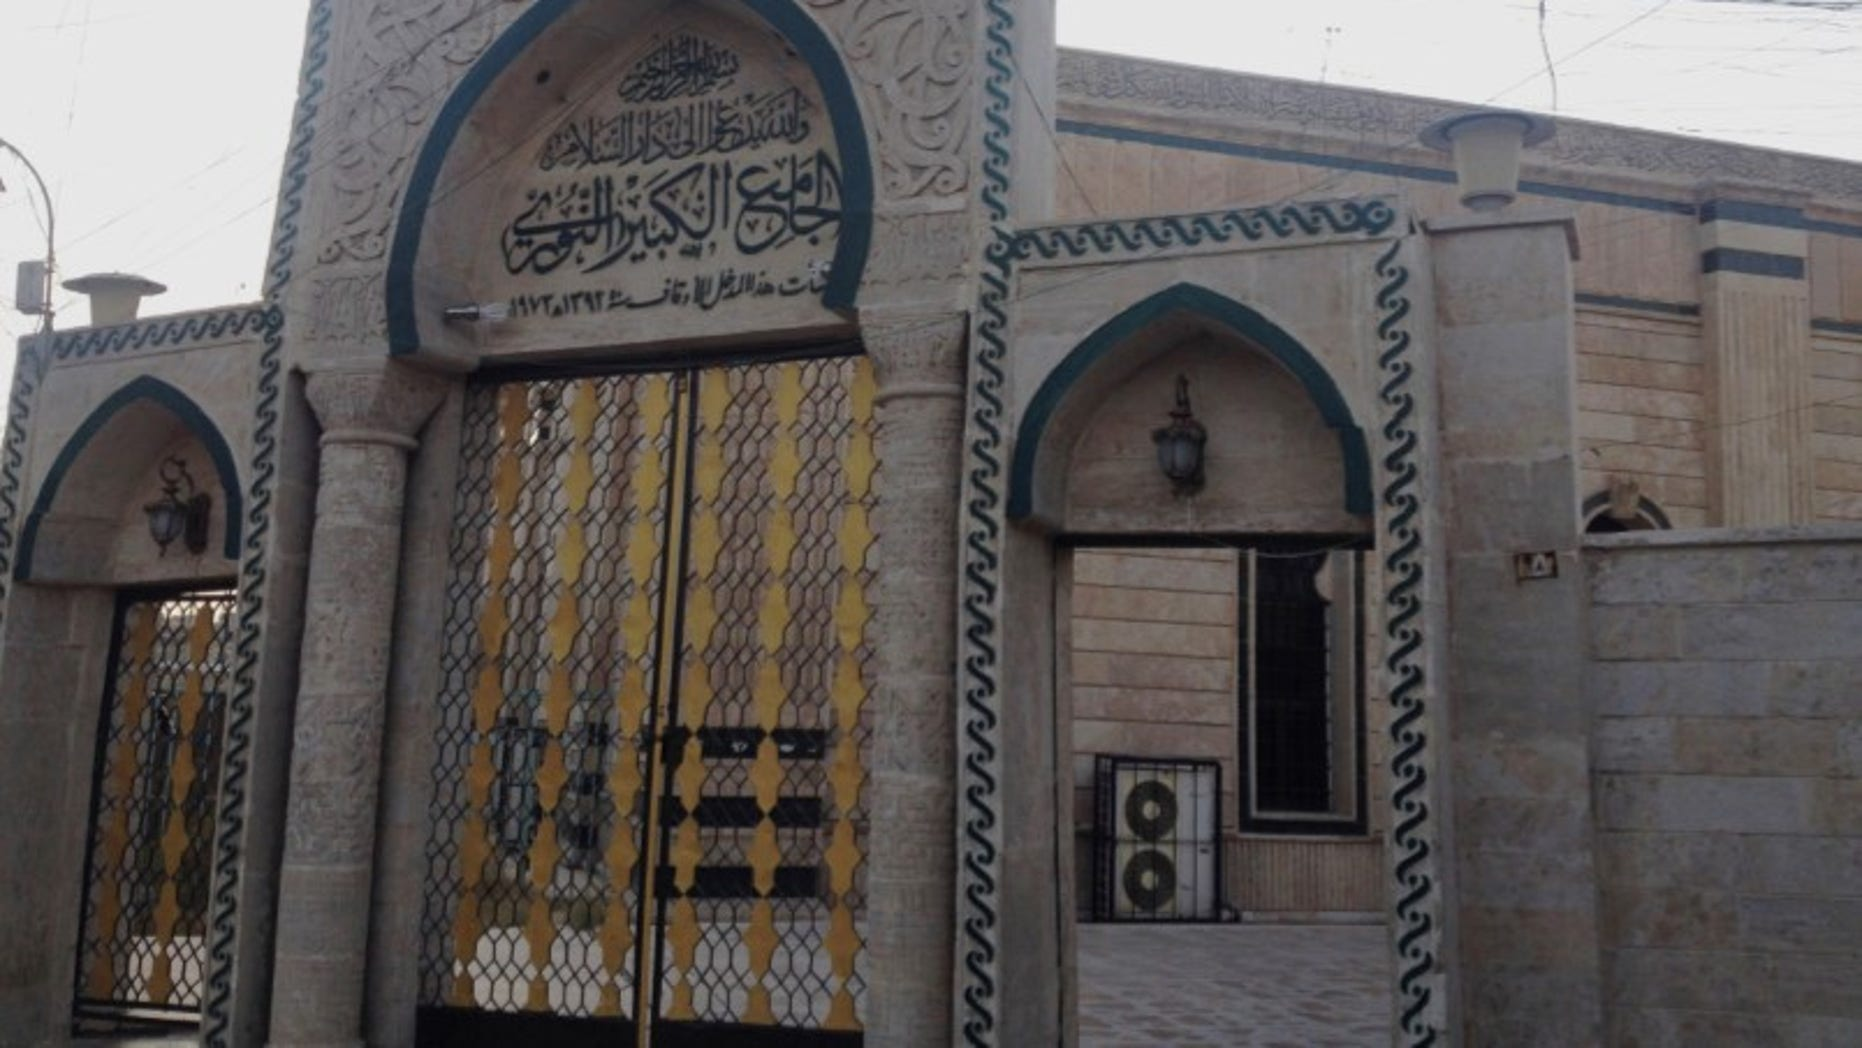 In this 2014 file photo, the gate of the Great Mosque or al-Nuri Mosque is seen in the northern city of Mosul, Iraq. The Islamic State group destroyed Mosul's al-Nuri mosque and its iconic leaning minaret late Wednesday night when fighters detonated explosives inside the structures, according to Iraq's Ministry of Defense.